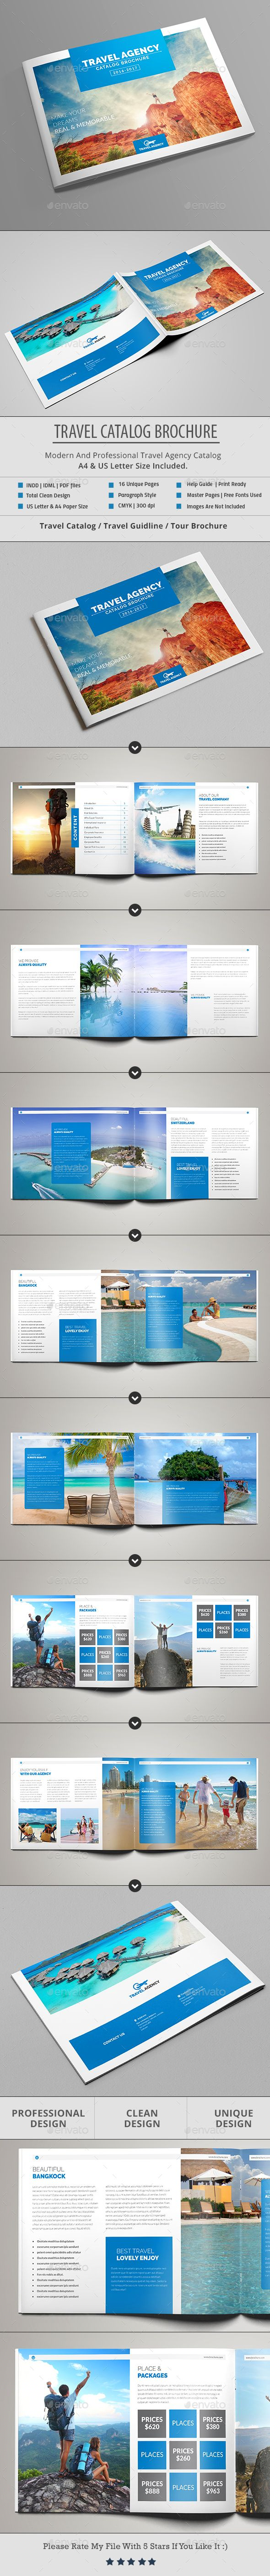 Travel Catalog / Brochure | Agencia viajes, Diseño editorial y Editorial